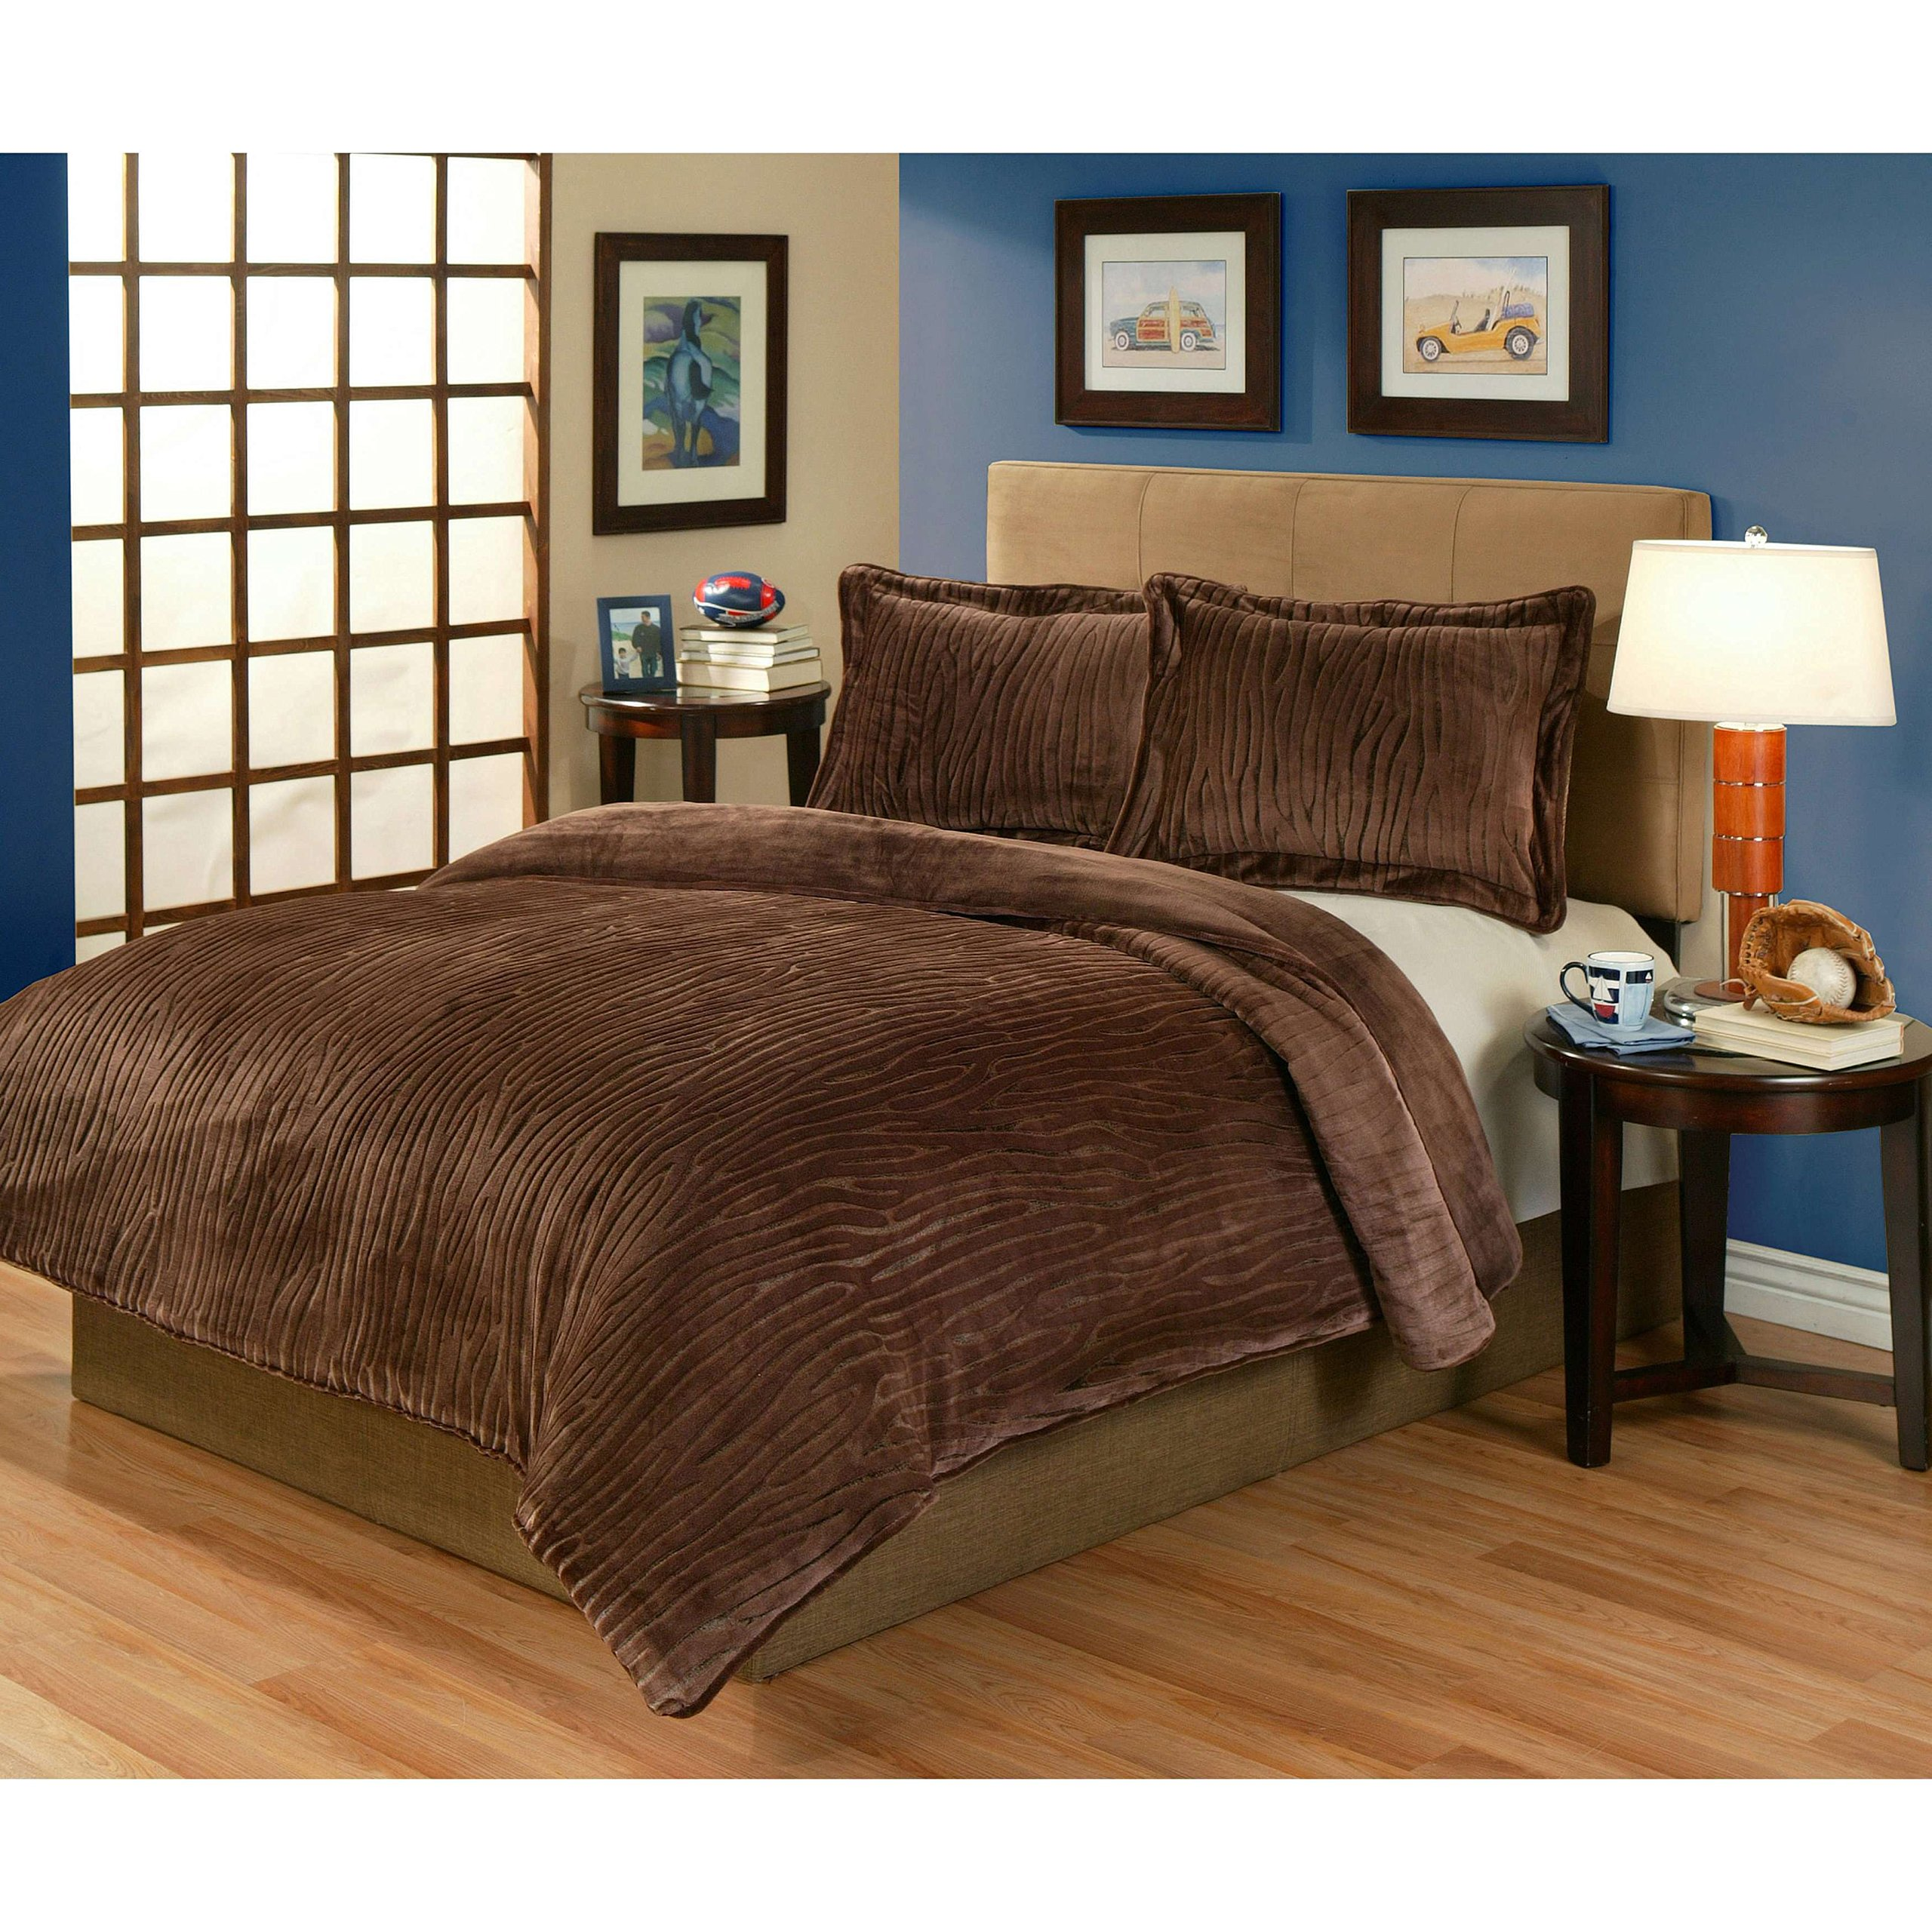 3 Piece Brown Cabin Lodge Wood Pattern Comforter Full Queen Set, Elegant Velvet Plush Sculpted Texture Design, Soft & Comfy Reversible Bedding, Features Lightweight, Warmth, Microplush Polyester